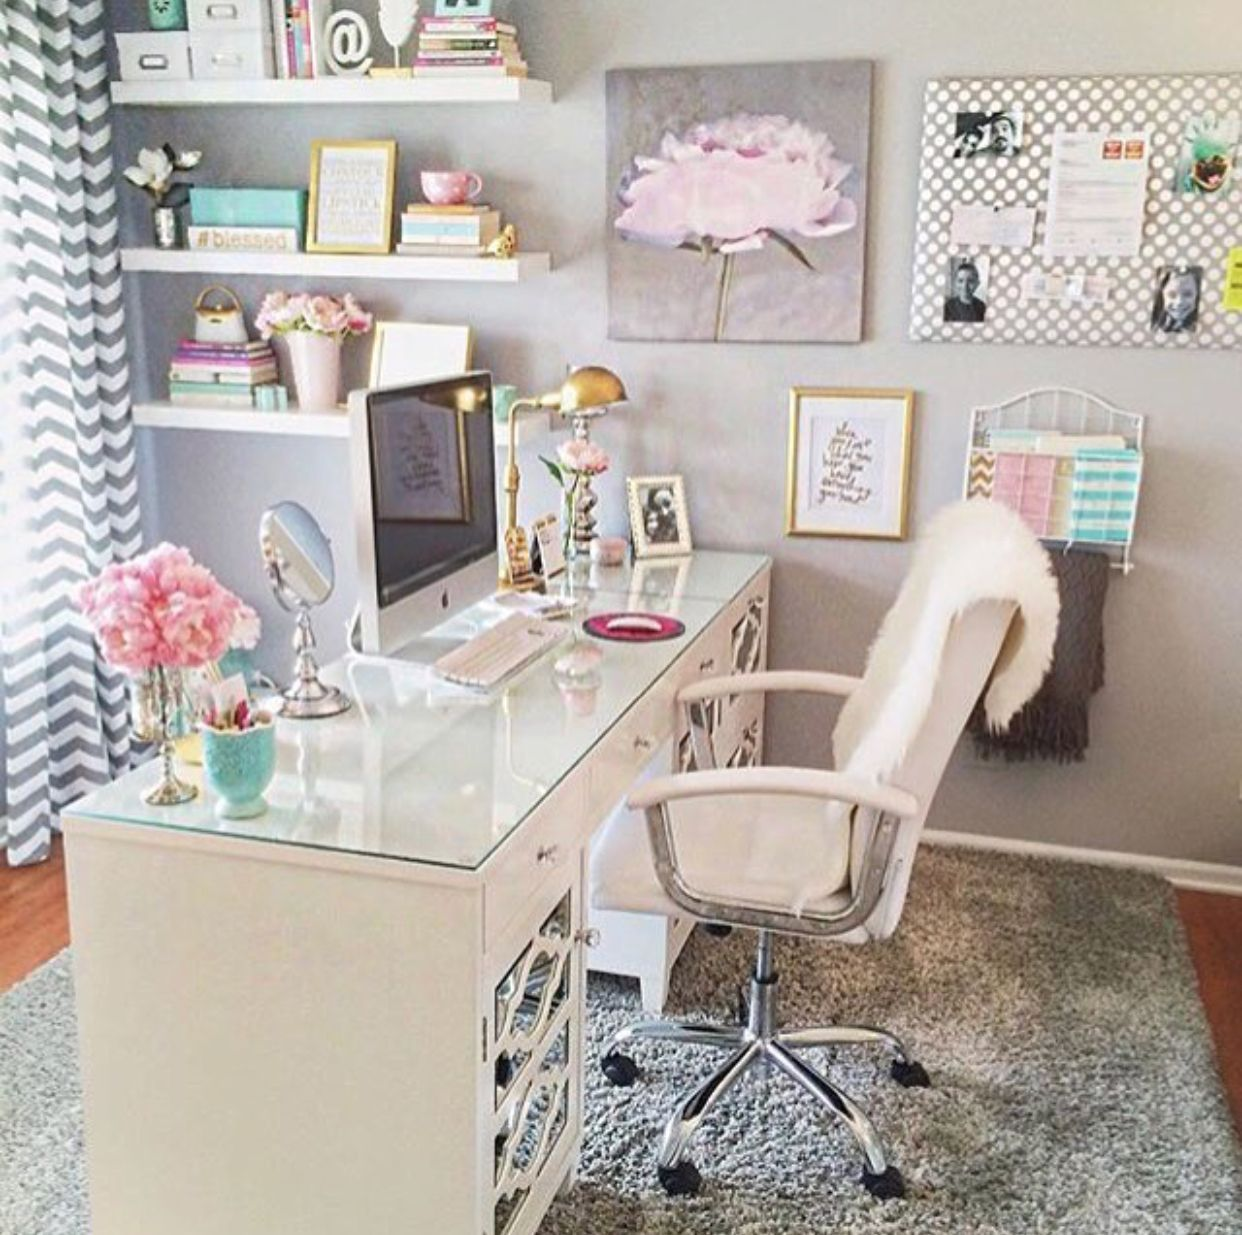 43 Ideas Office Decor For Cubicle Professional Must Popular 2019 Home Office Design Home Office Space Home Office Decor,Top Christmas Gifts 2016